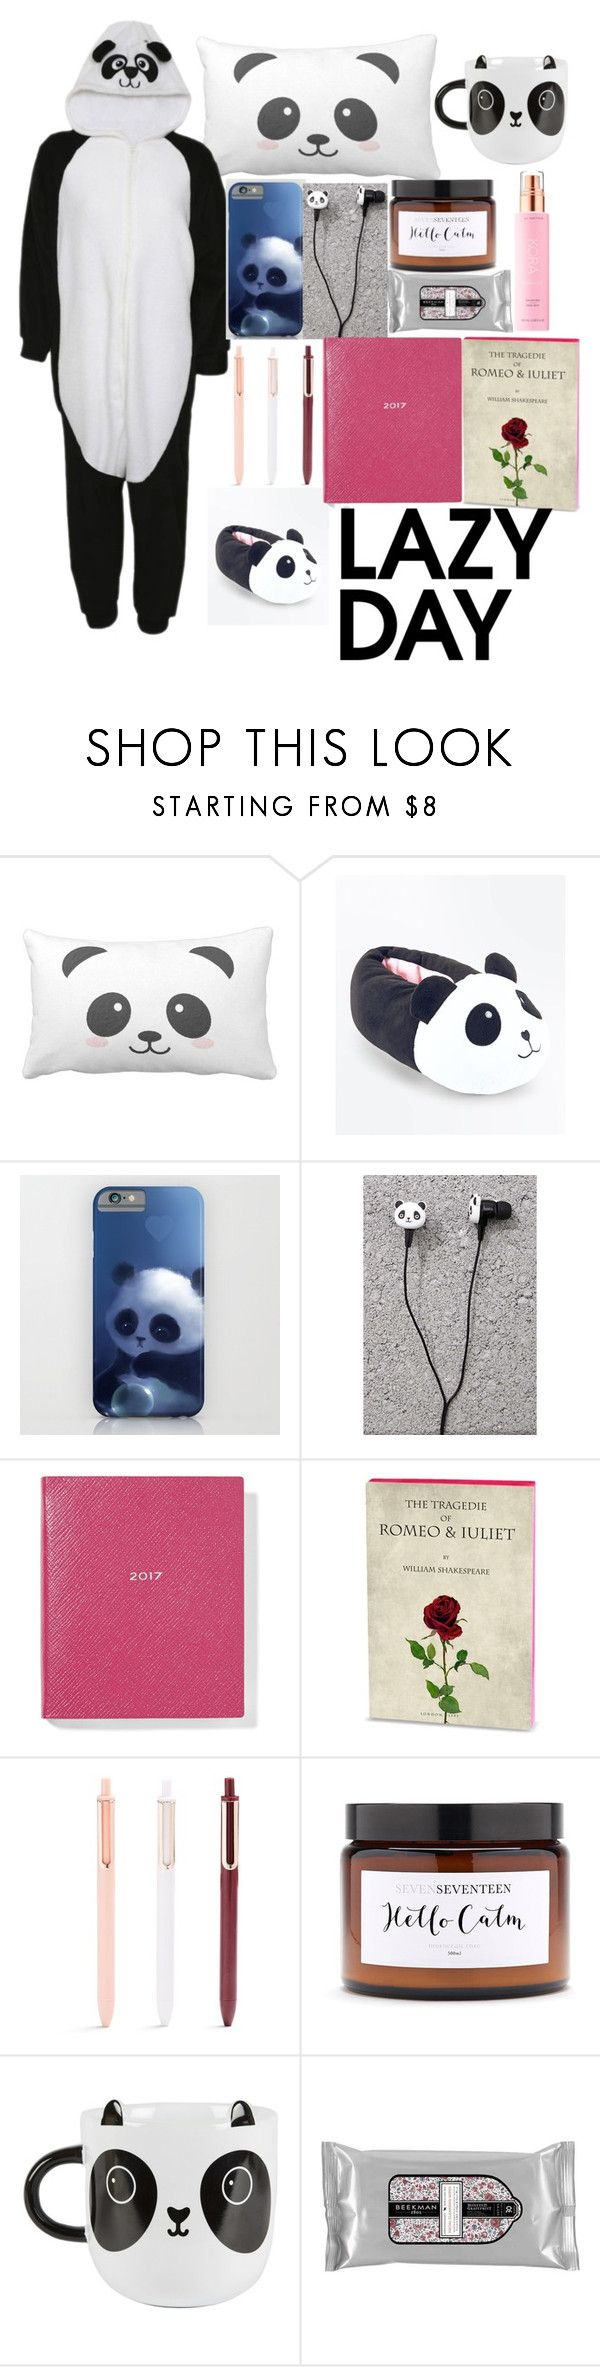 """Panda day"" by saraholly ❤ liked on Polyvore featuring New Look, Forever 21, Smythson, Sass & Belle, Beekman 1802 and KORA Organics by Miranda Kerr"